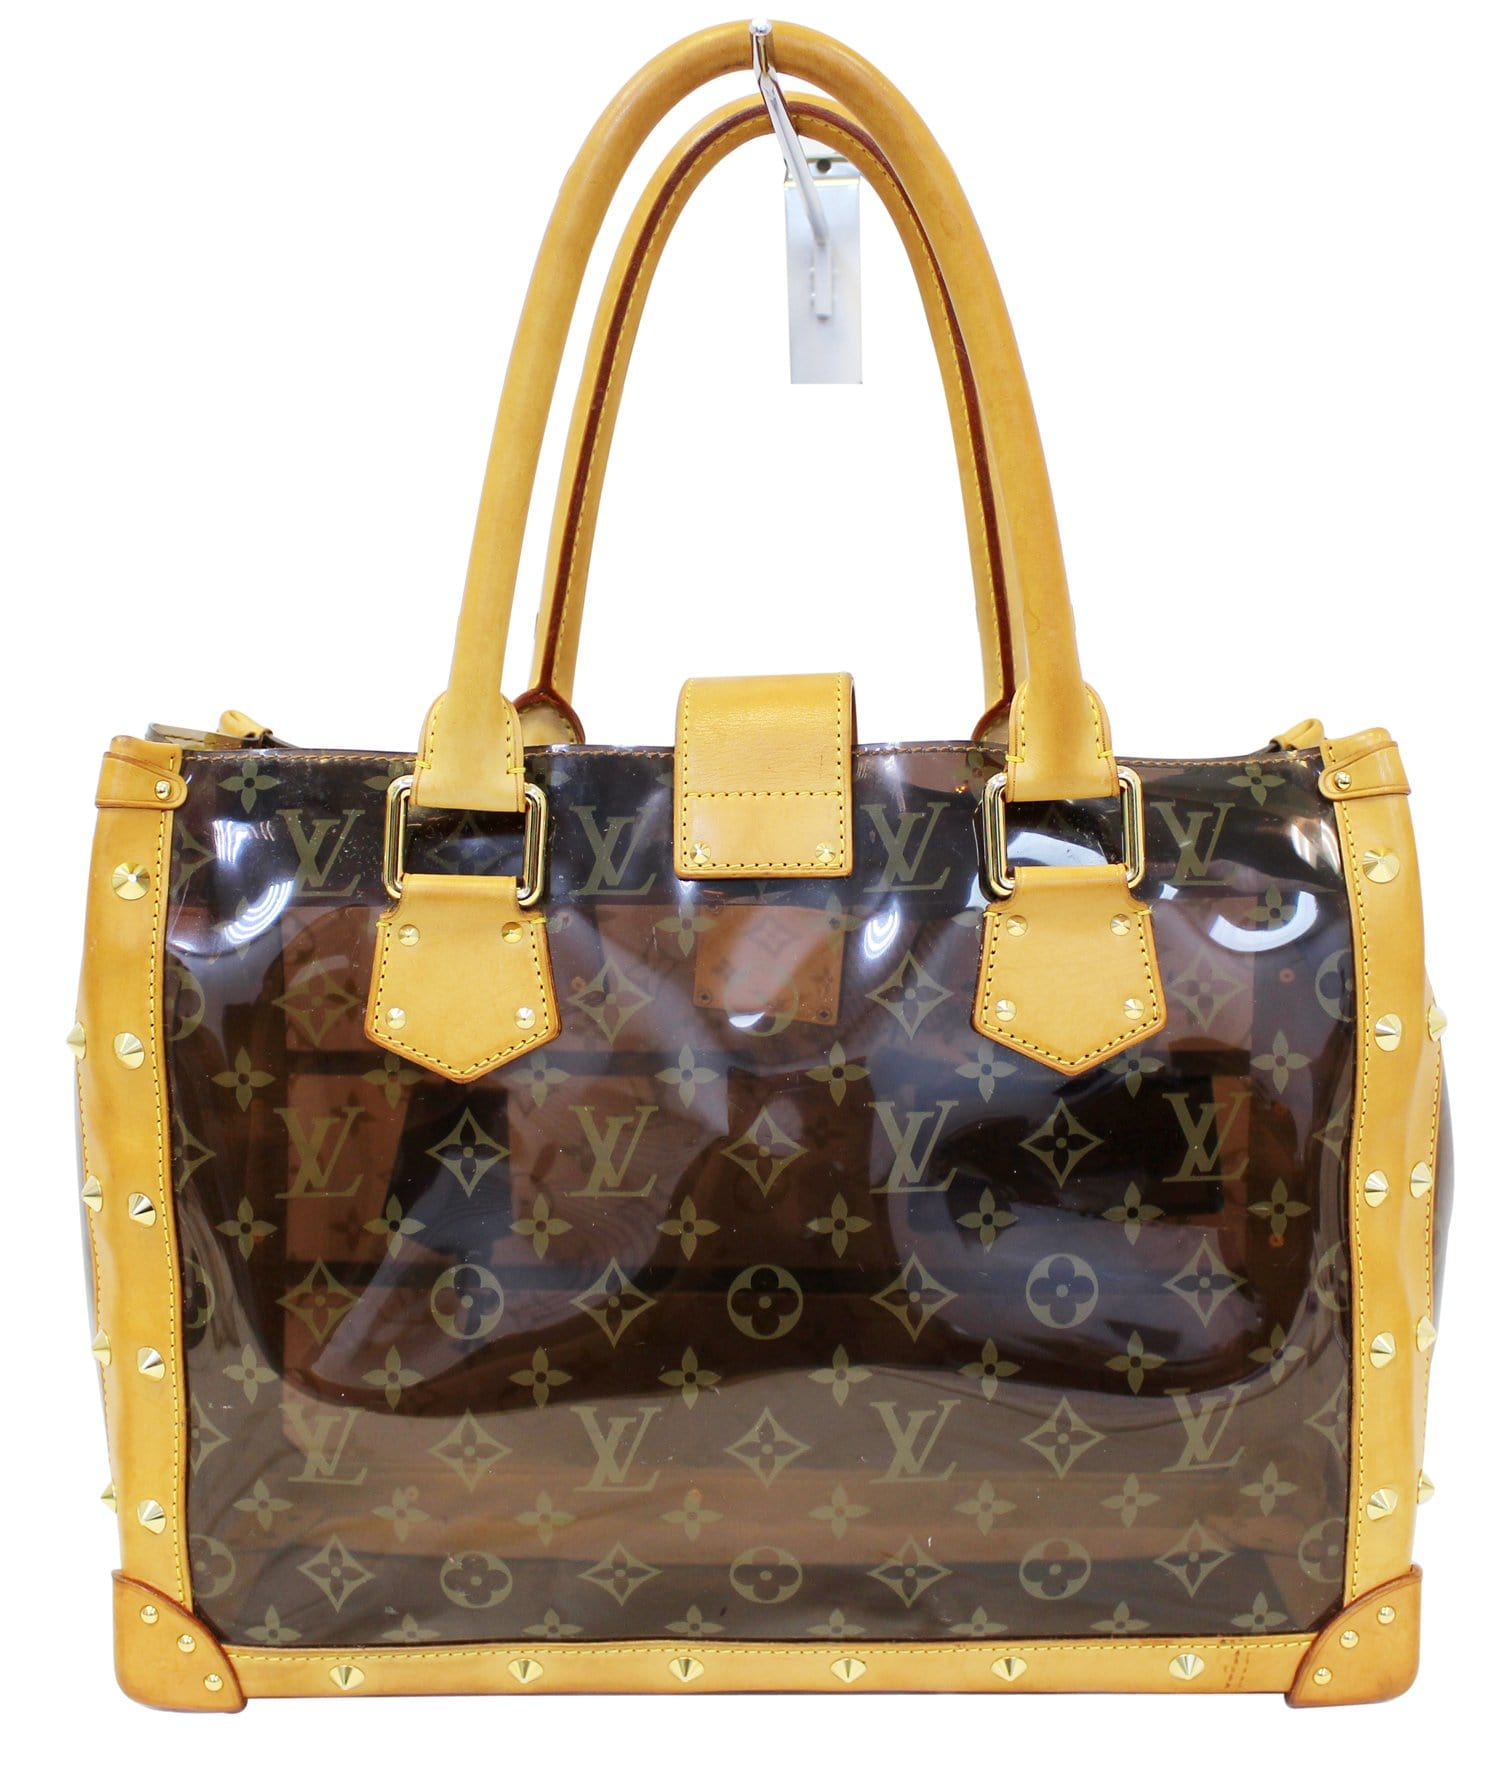 7020a133ca4 LOUIS VUITTON Monogram Ambre Neo Cabas Cruise MM Tote Bag Limited